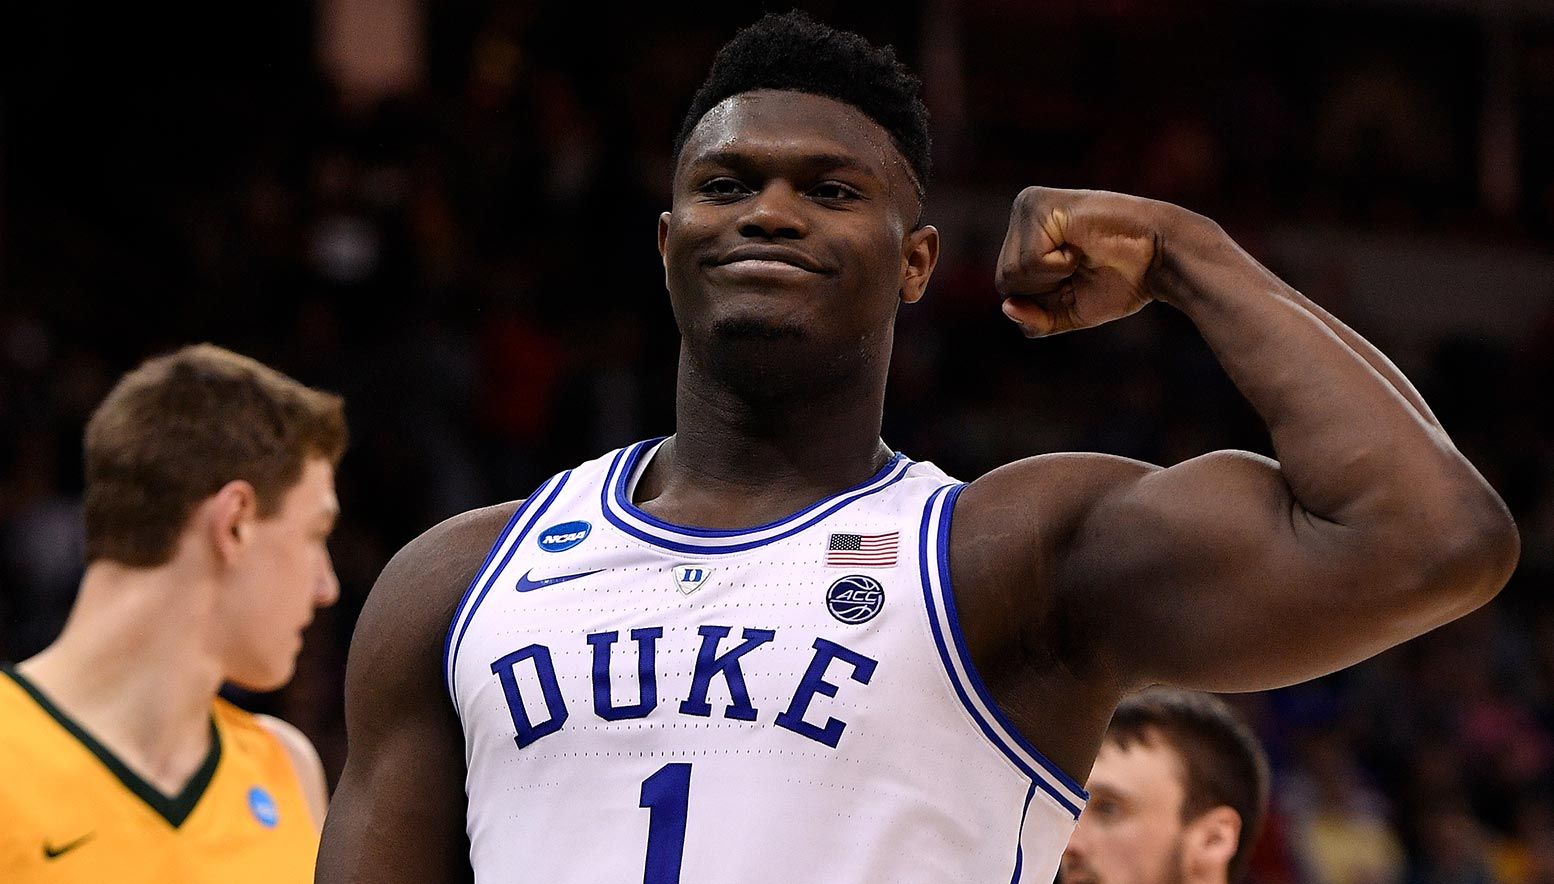 Zion Williamson of Duke flexes